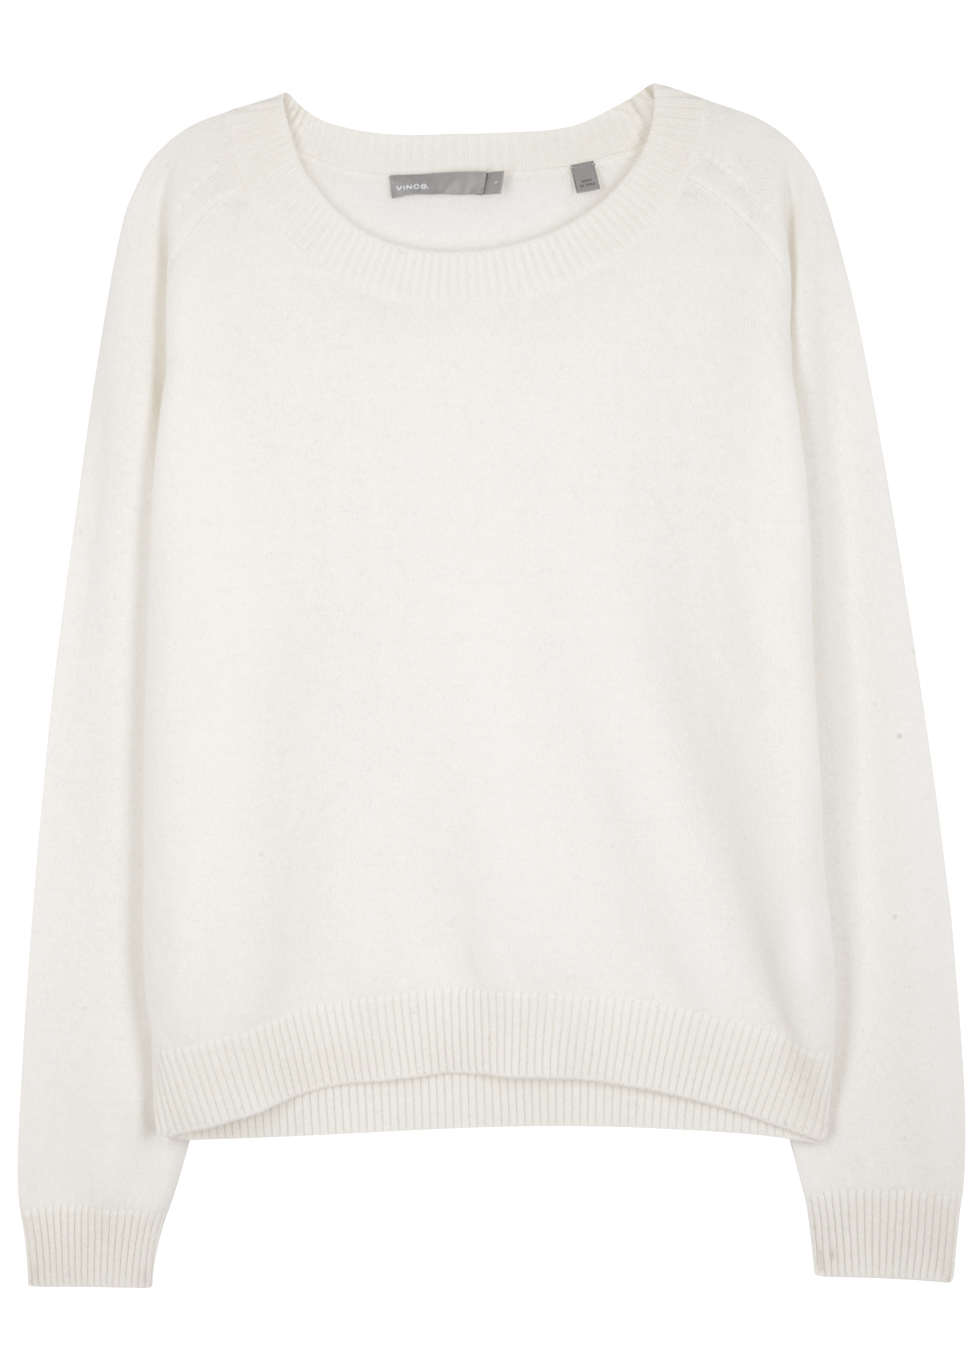 White Cashmere Jumper - neckline: round neck; pattern: plain; style: standard; predominant colour: white; occasions: casual, work, creative work; length: standard; fit: standard fit; fibres: cashmere - 100%; sleeve length: long sleeve; sleeve style: standard; texture group: knits/crochet; pattern type: knitted - fine stitch; wardrobe: investment; season: a/w 2016